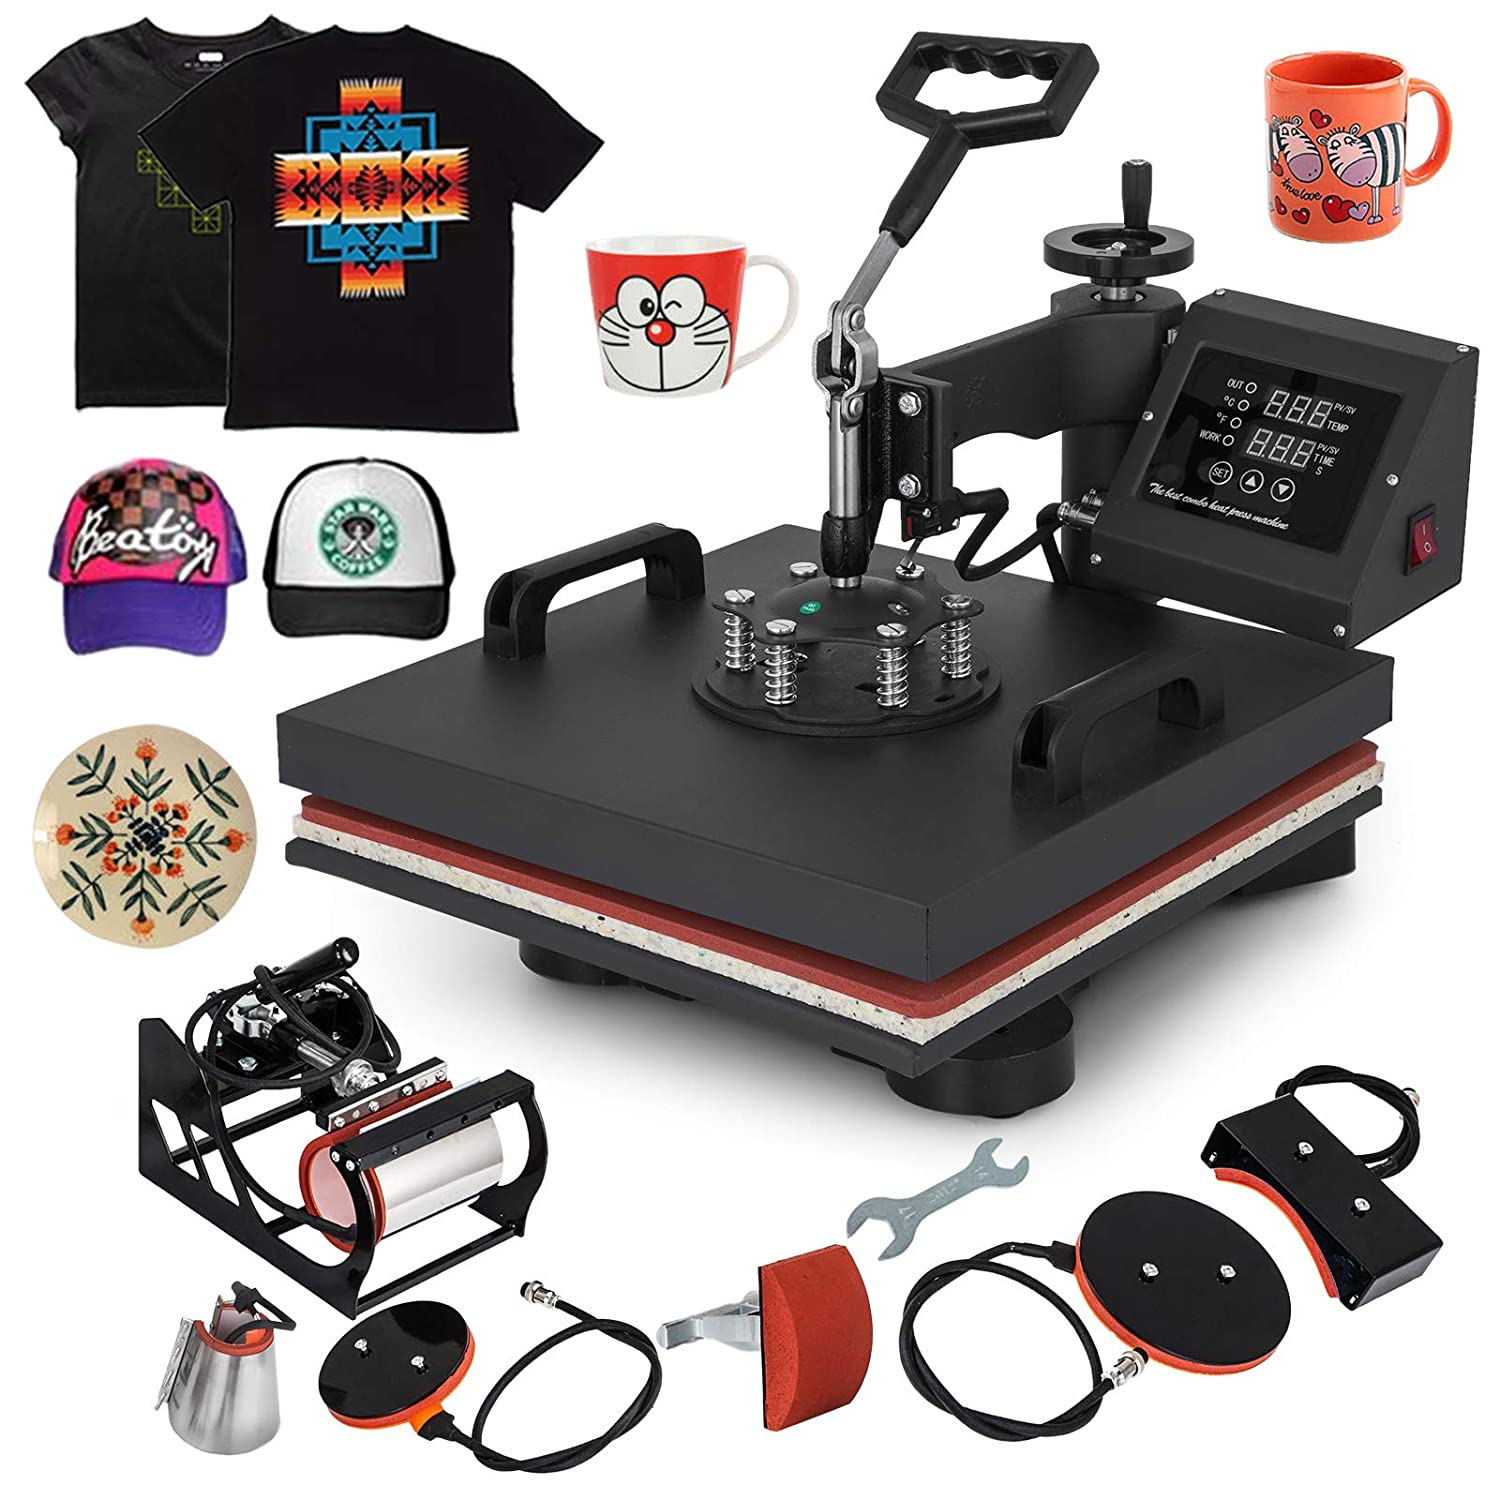 Mophorn Heat Press 15x15 inch 6pcs Heat Press Machine 1050W Multifunctional Sublimation Dual LED Display Heat Press Machine for t Shirts Swing Away Design (15x15Inch, 6IN1 Element)